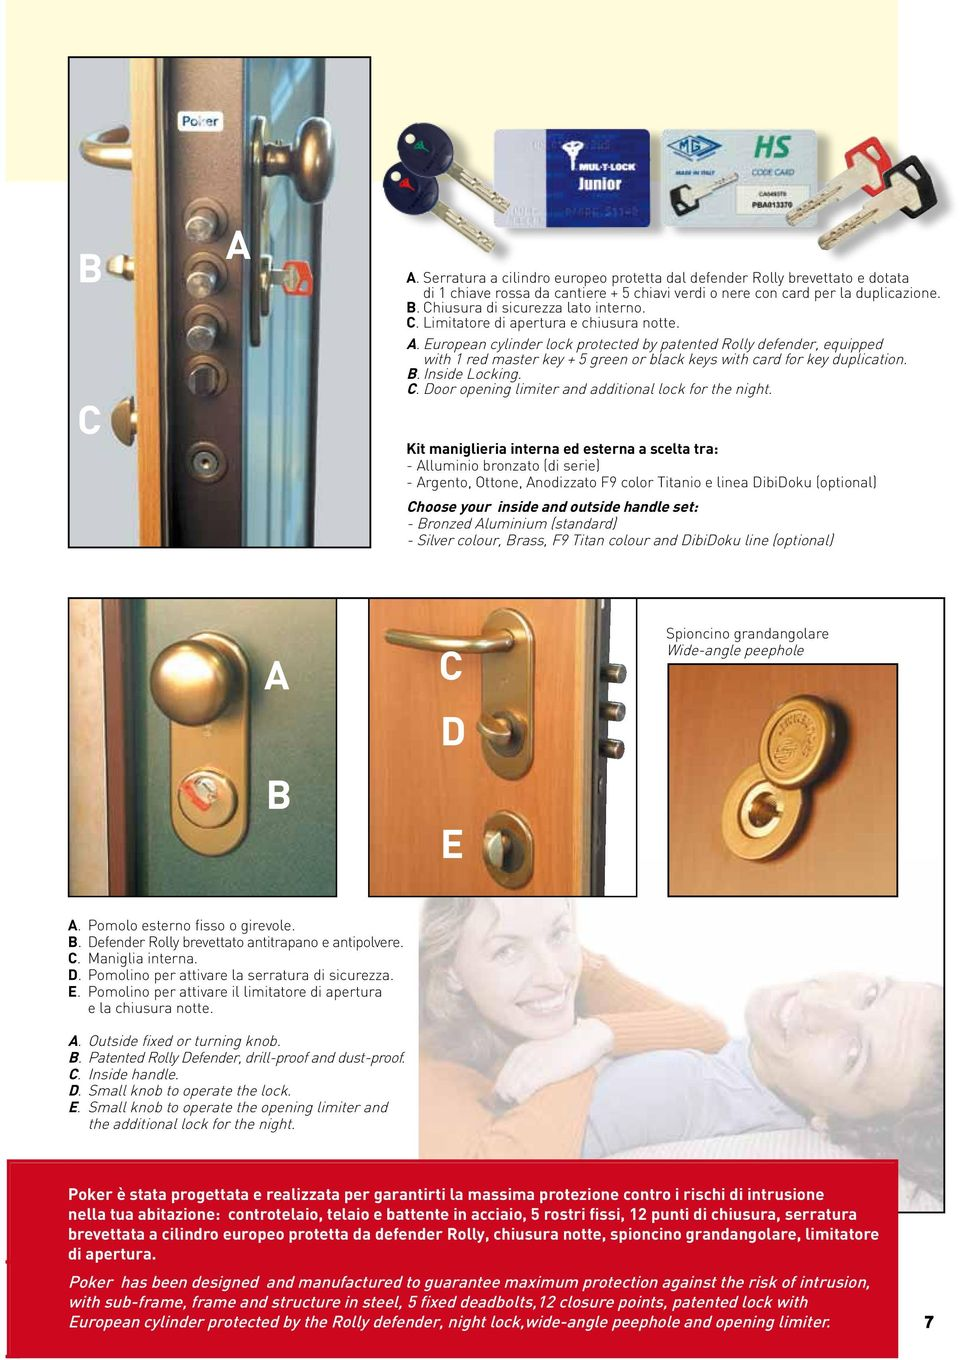 European cylinder lock protected by patented Rolly defender, equipped with 1 red master key + 5 green or black keys with card for key duplication. B. Inside Locking. C.